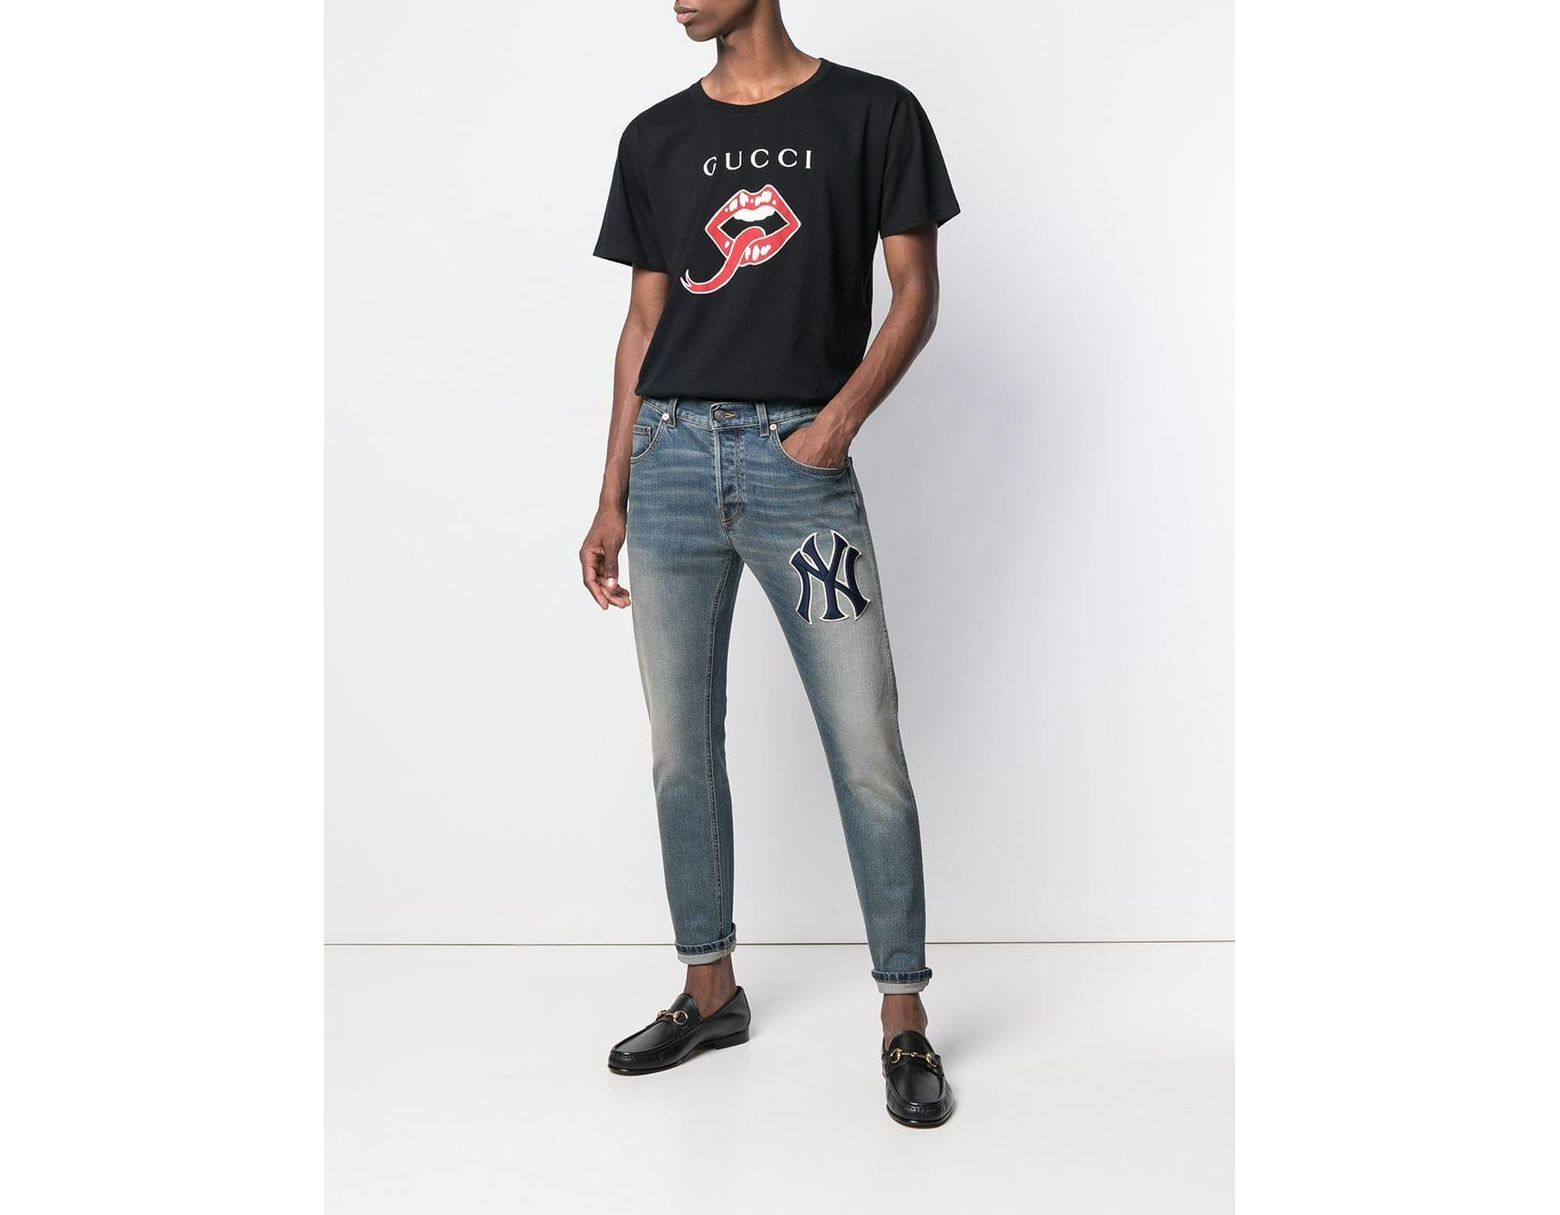 cccbe9c69b1 Lyst - Gucci Mouth And Tongue Print T-shirt in Black for Men